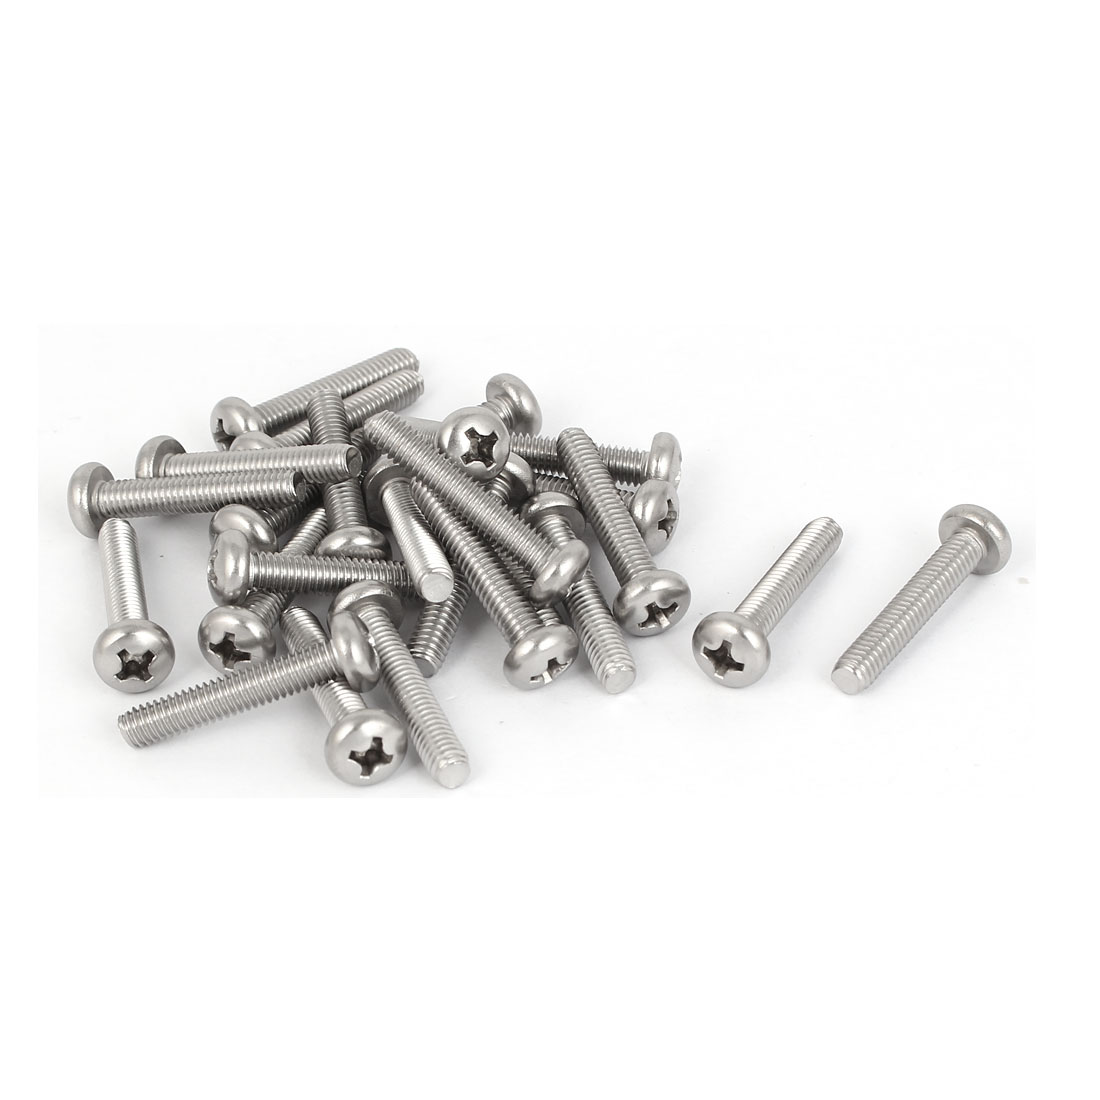 25 Pcs M4x22mm 316 Stainless Steel Phillips Pan Head Machine Screws Silver Tone